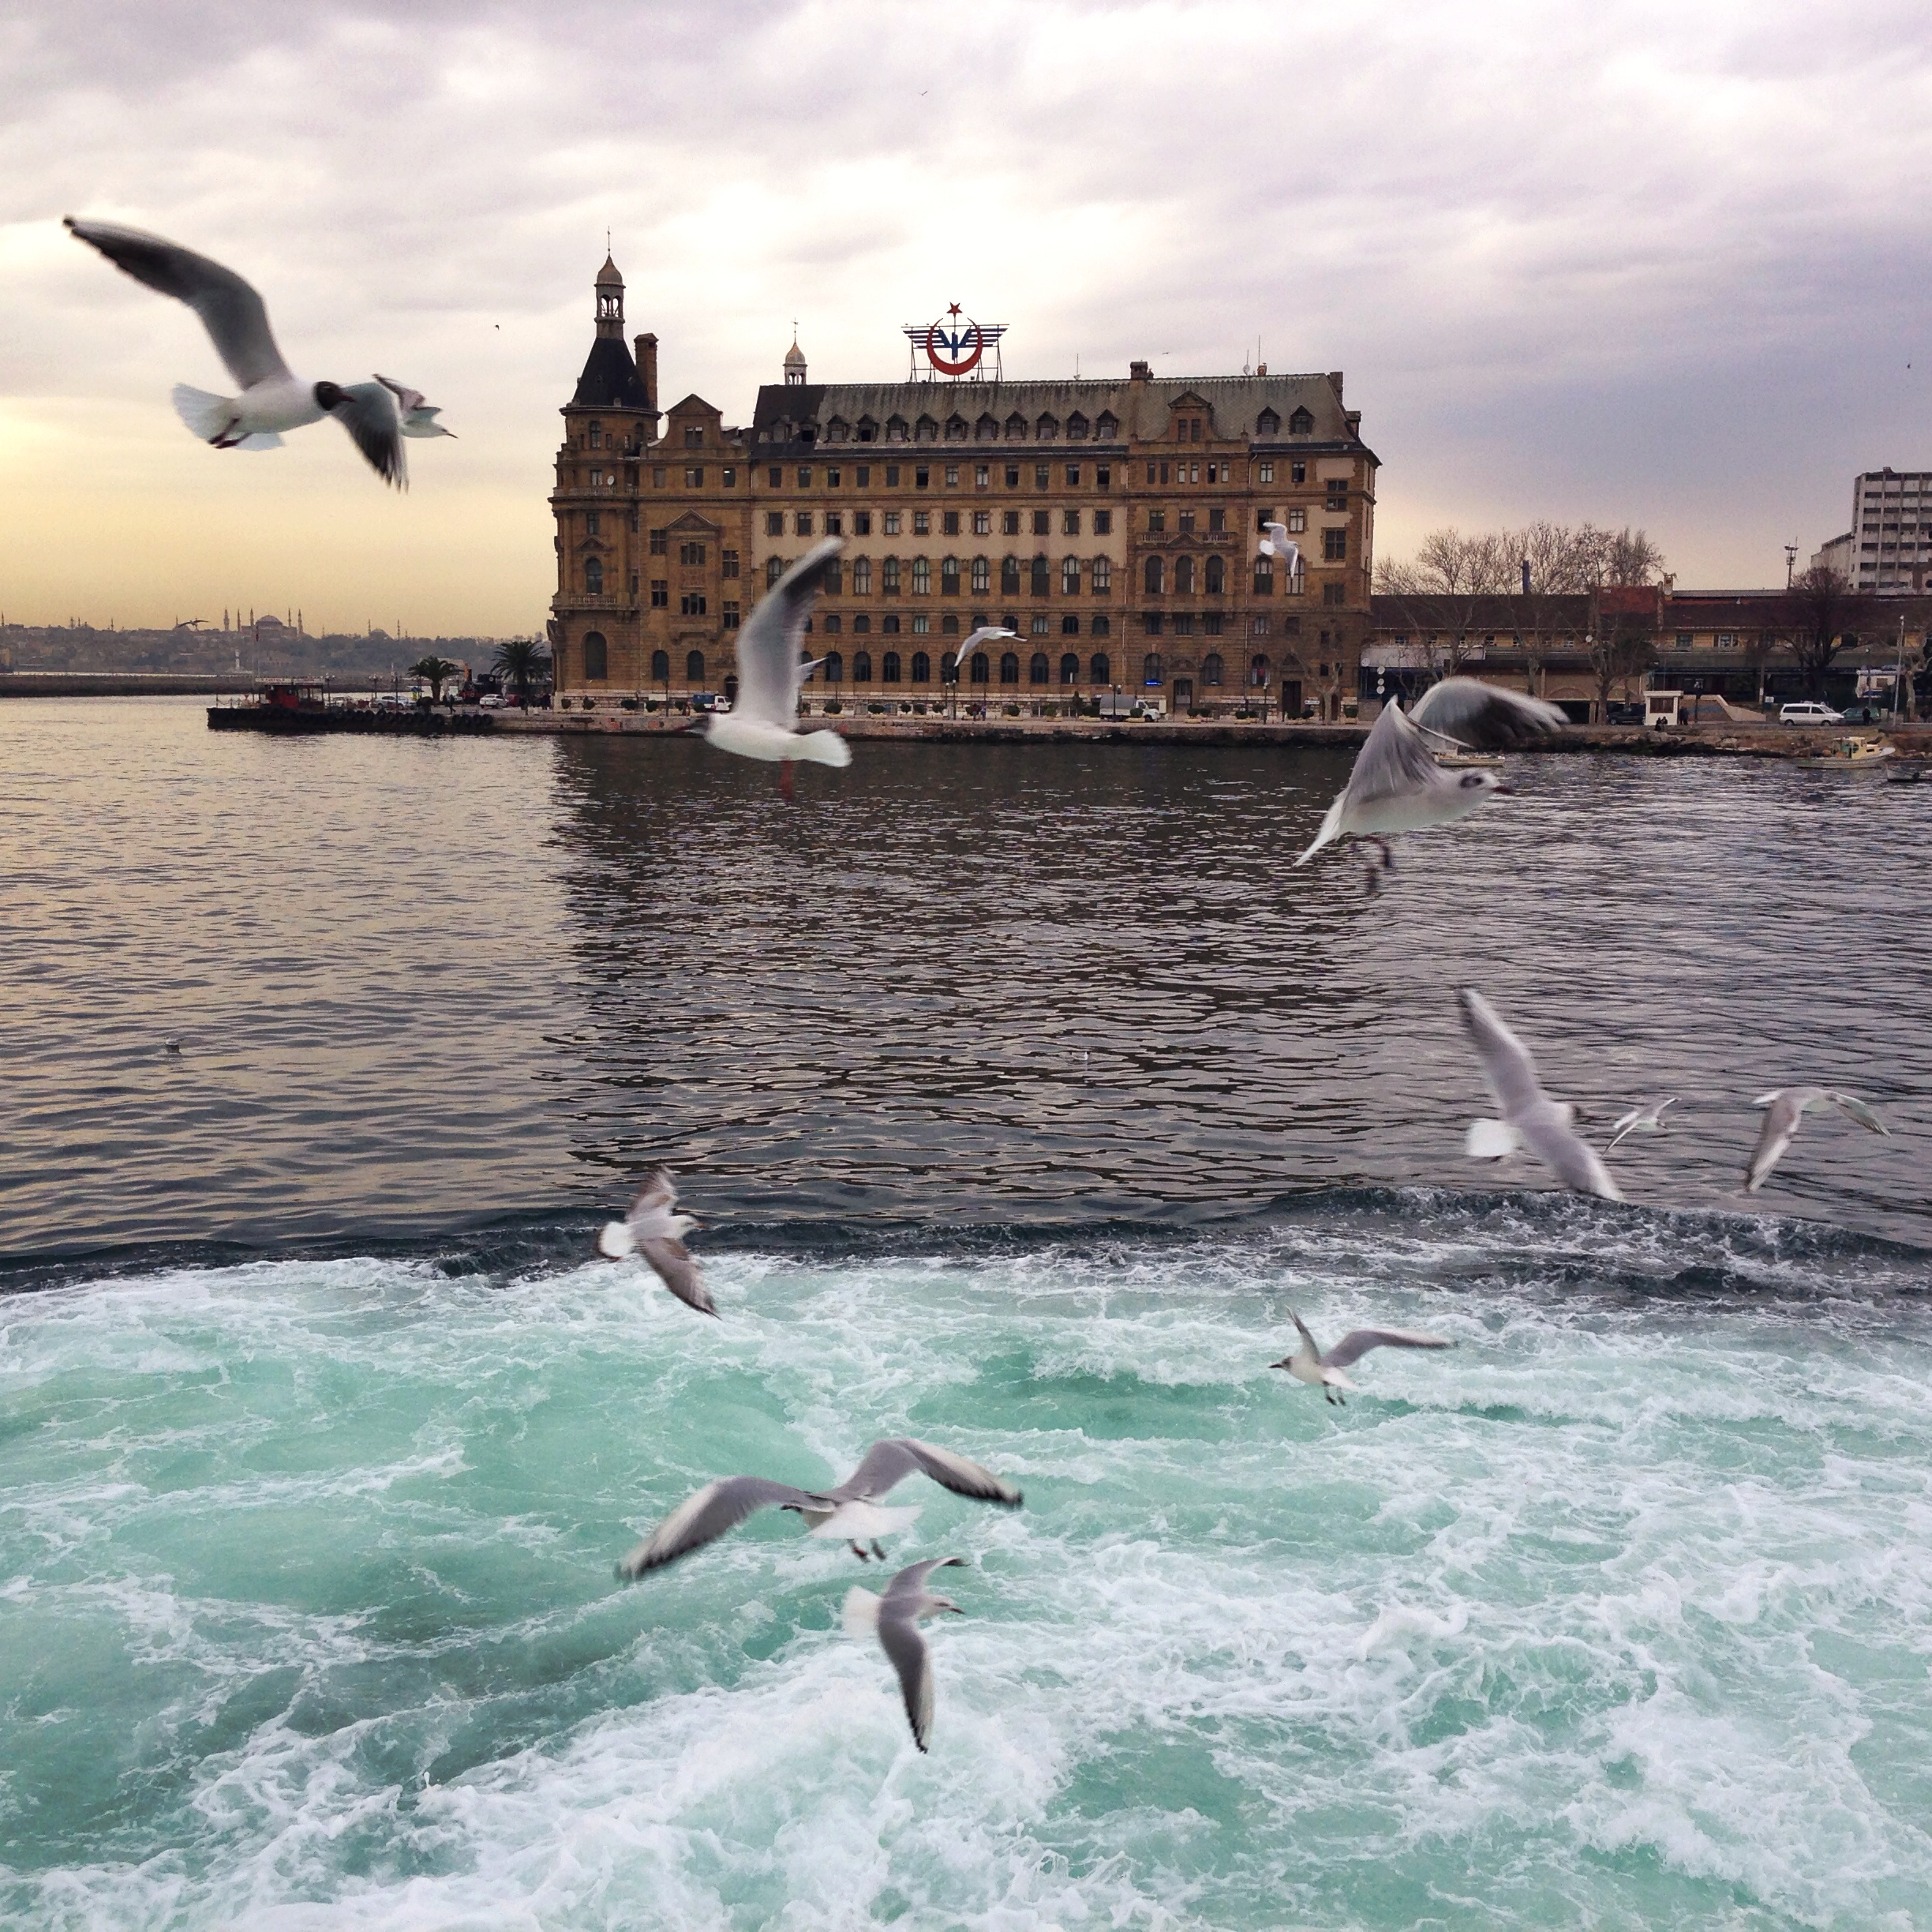 Haydarpasa Train Station |Haydarpasa train station in Kadikoy, Istanbul, on Istanbul's Asian side - built by the Ottomans in 1909. Haydarpasa is Turkey's busiest terminal, temporarily closed while constructing the high-speed Istanbul-Ankara rail. The new line is estimated to reduce the former 6hr ride to 2hrs.